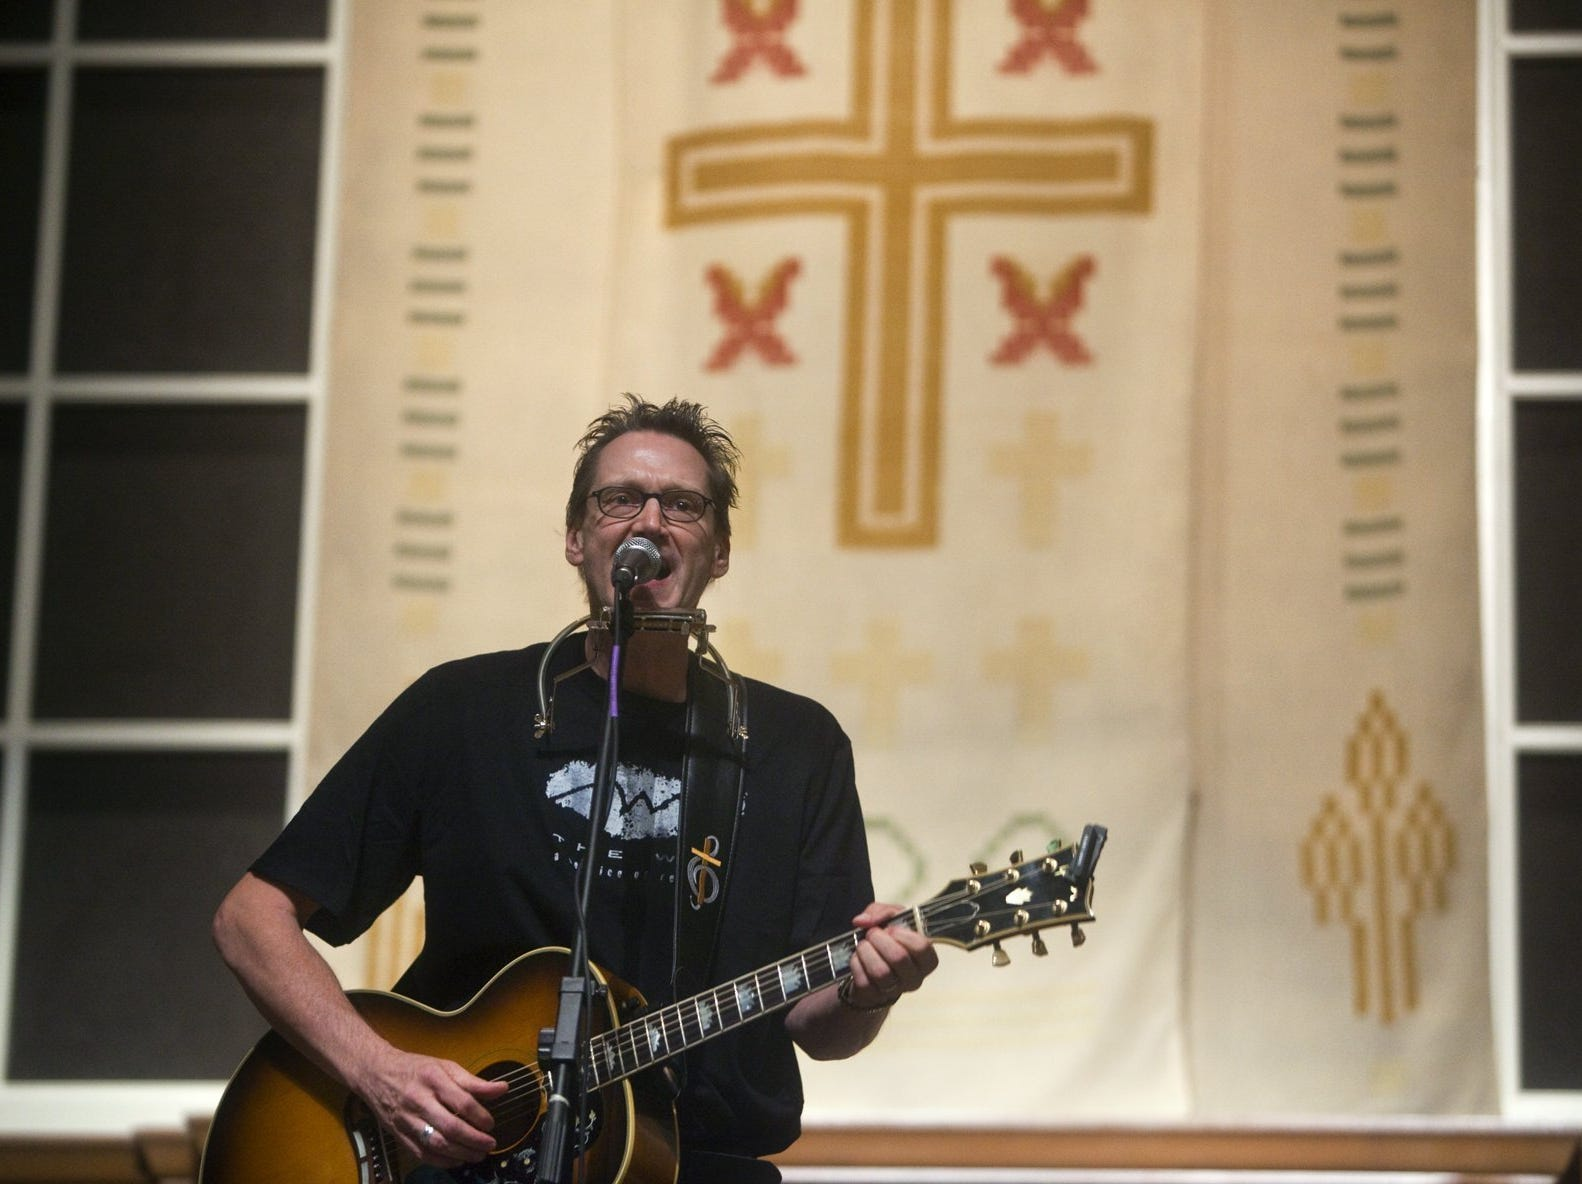 October 22, 2010 - Rev. John Kilzer, minister at St. John's United Methodist Church, former rocker and addict, started a new weekly worship service for those in recovery.